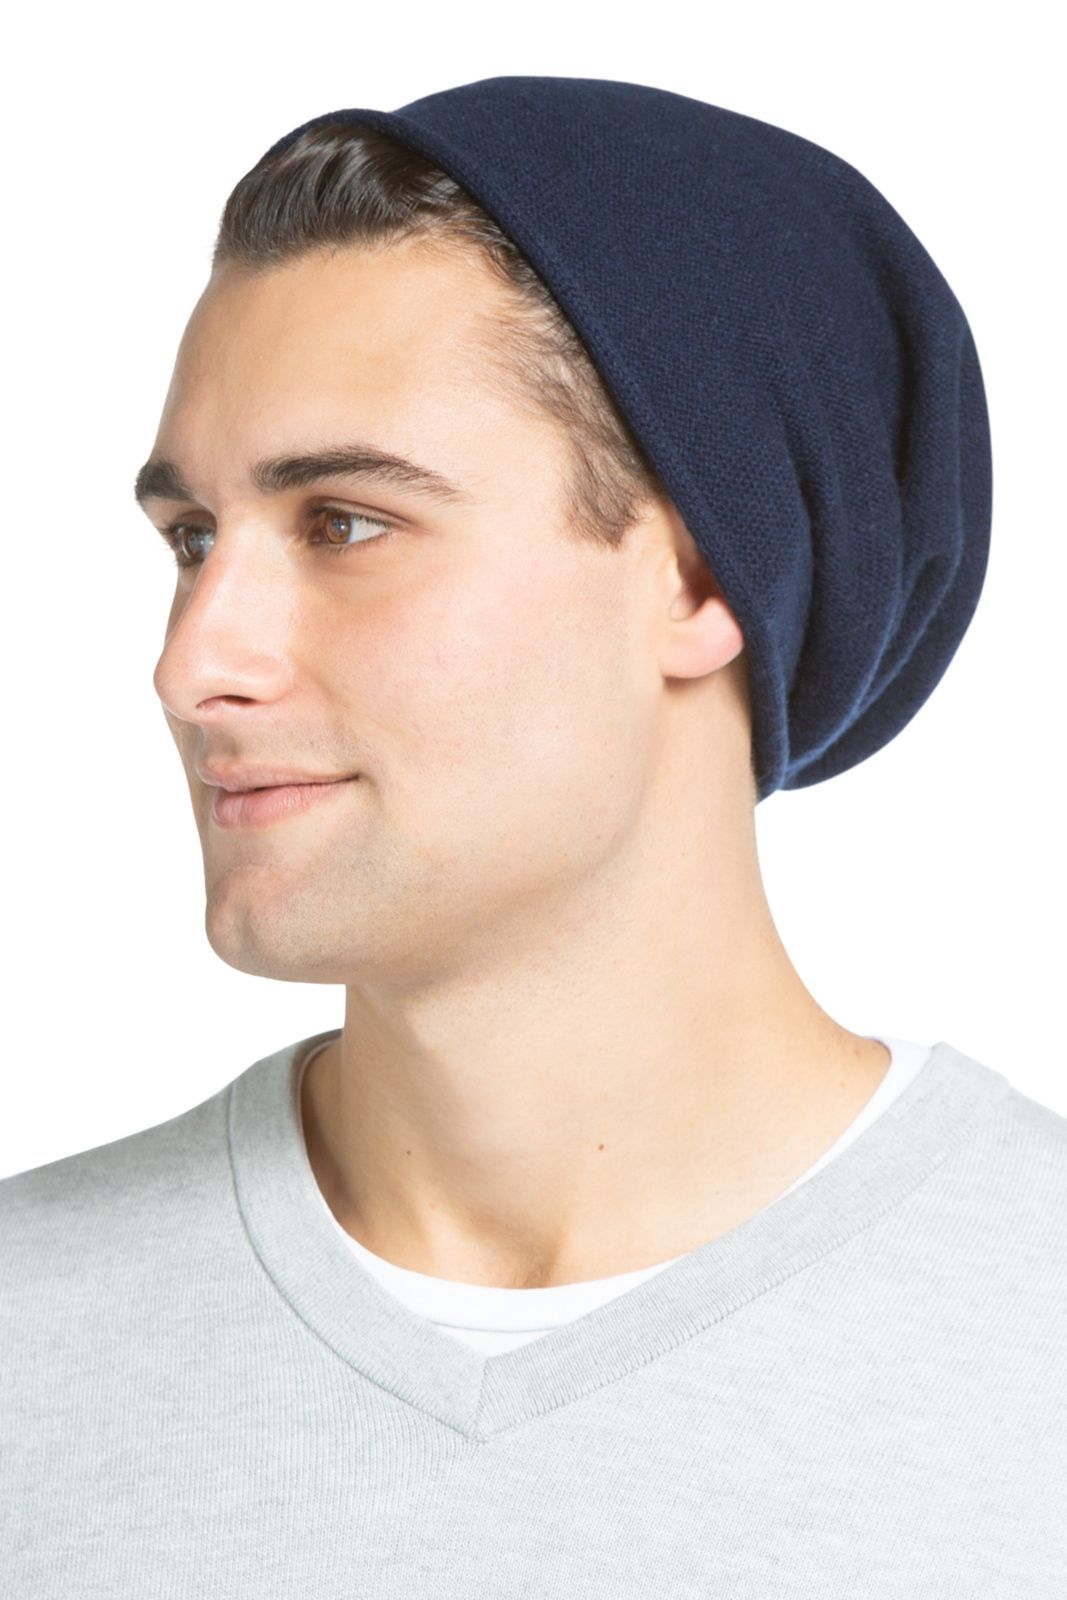 60d0a6006b8 Men s 100% Pure Cashmere Ribbed Hat - Fishers Finery - Fishers Finery